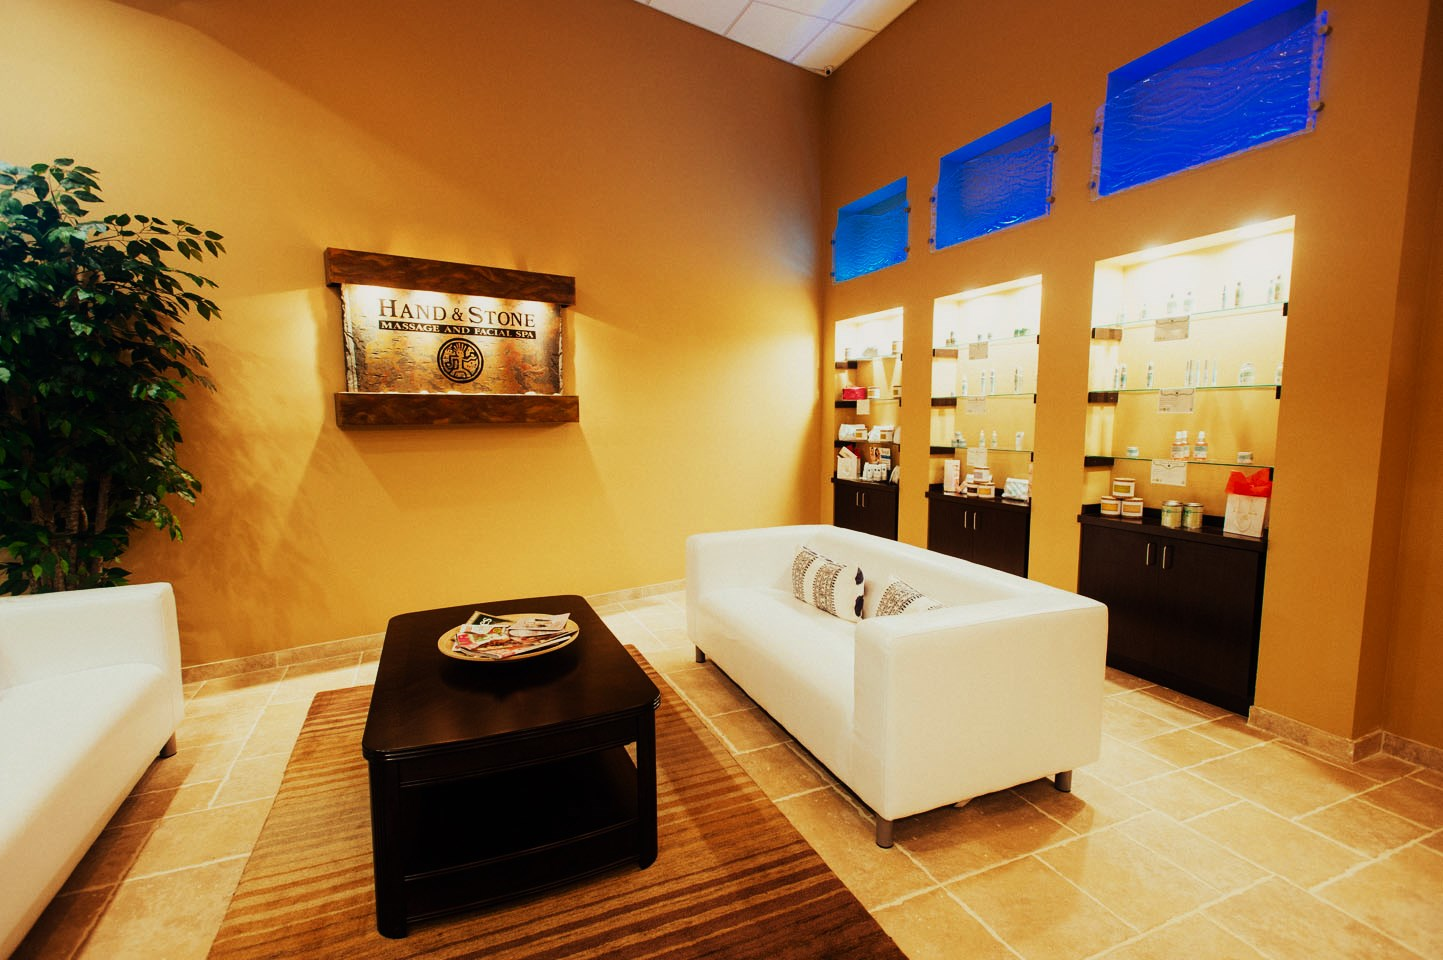 Hand & Stone Massage and Facial Spa Jacksonville, FL  DLP, LLC  Metal Framing, Drywall, Sound Board, Acoustical Ceilings, Doors and Frames, Carpentry